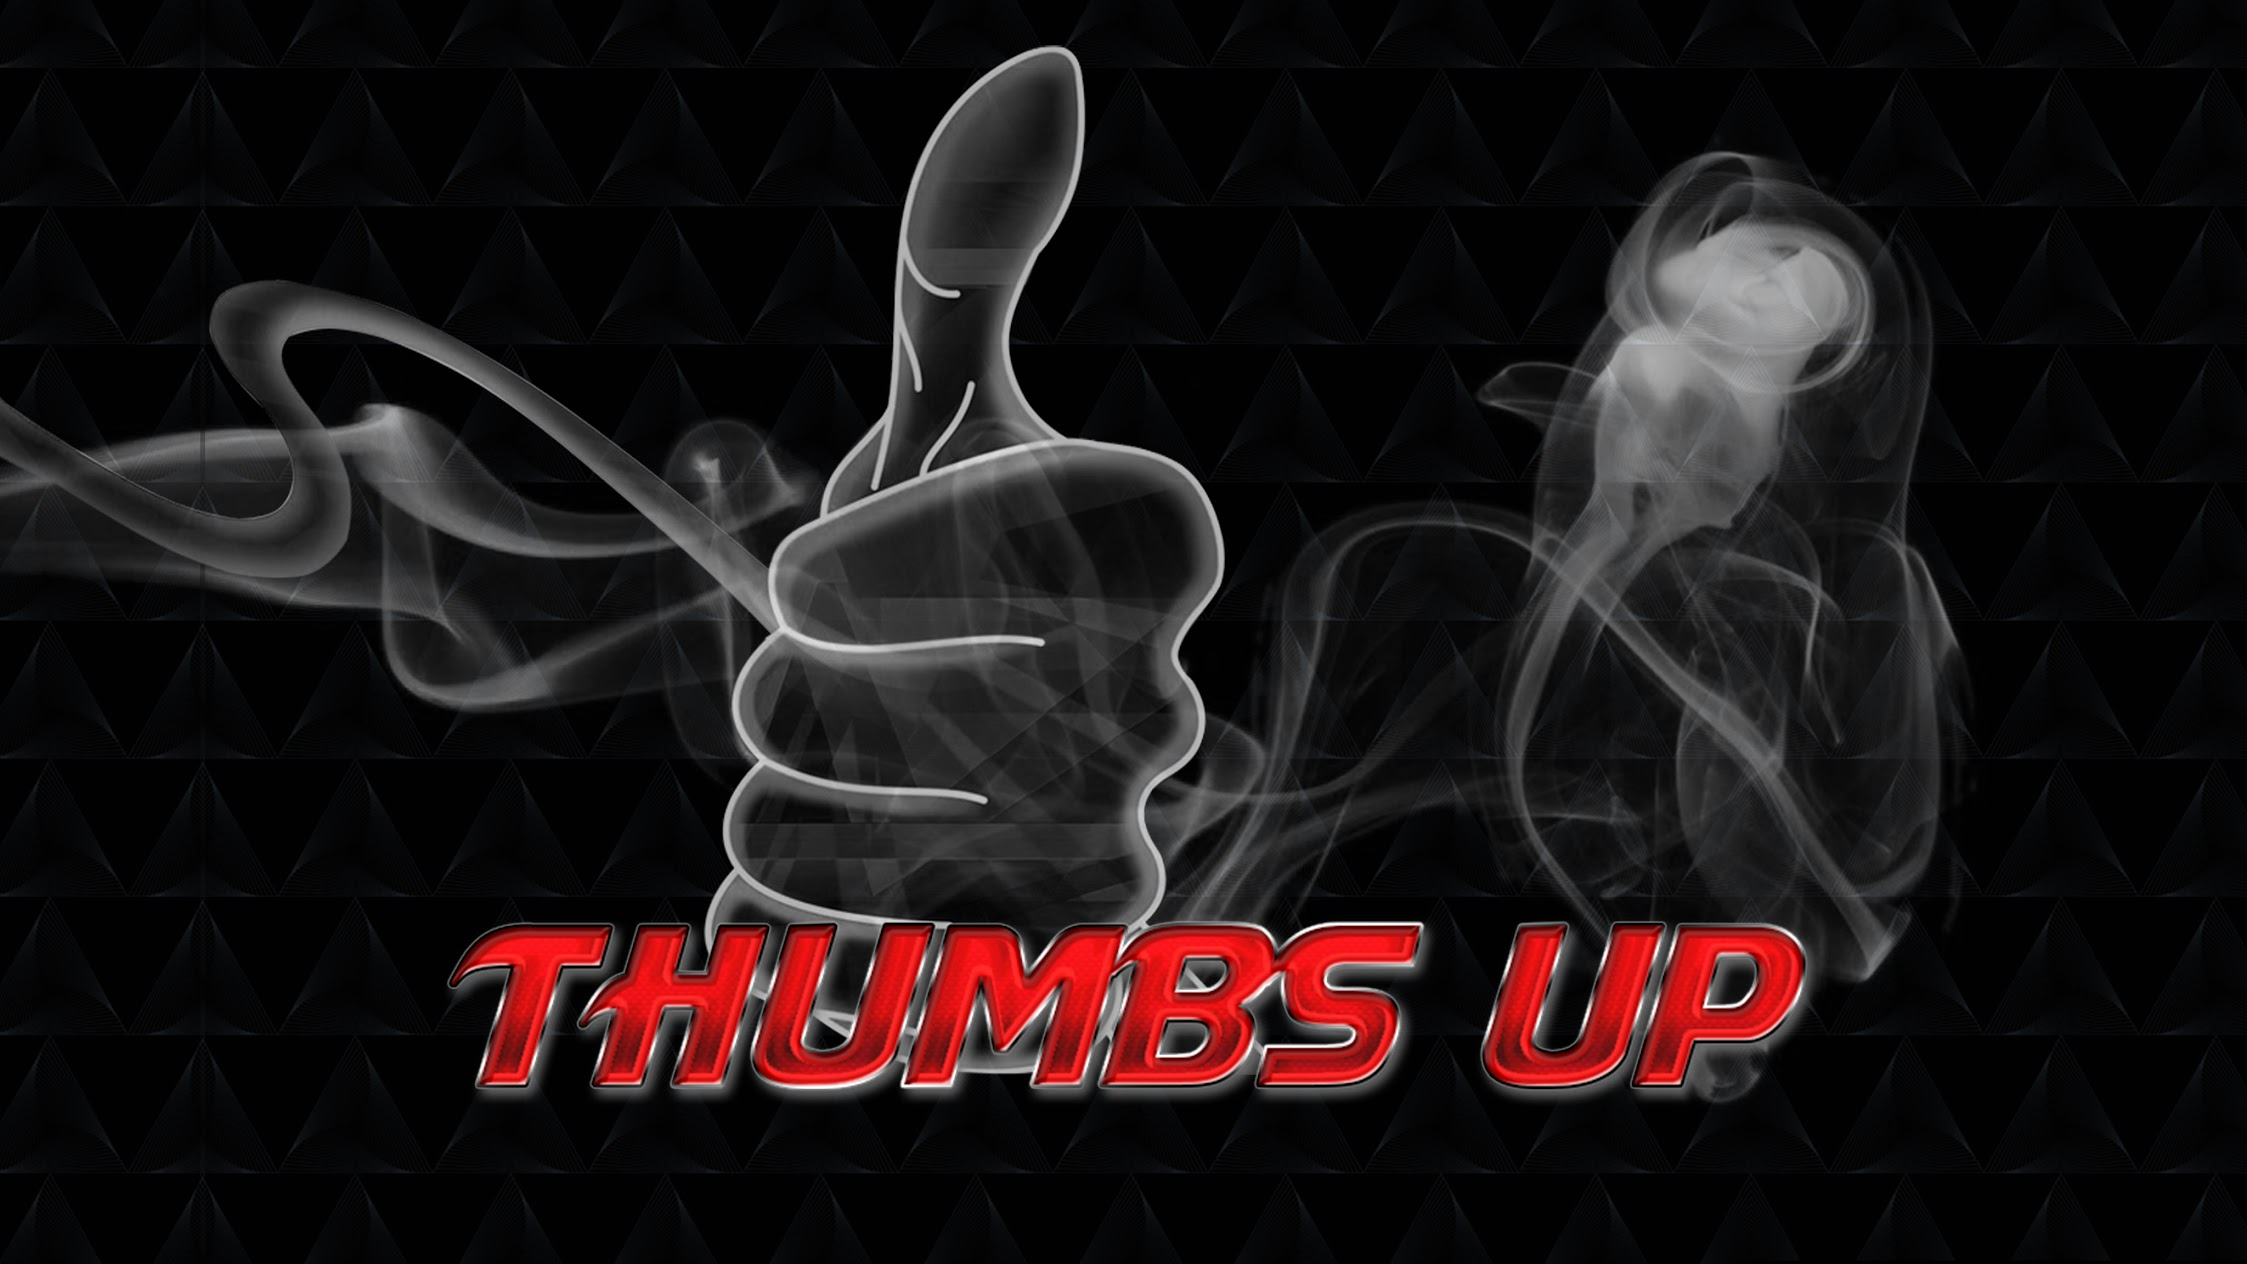 Thumbs Up Games